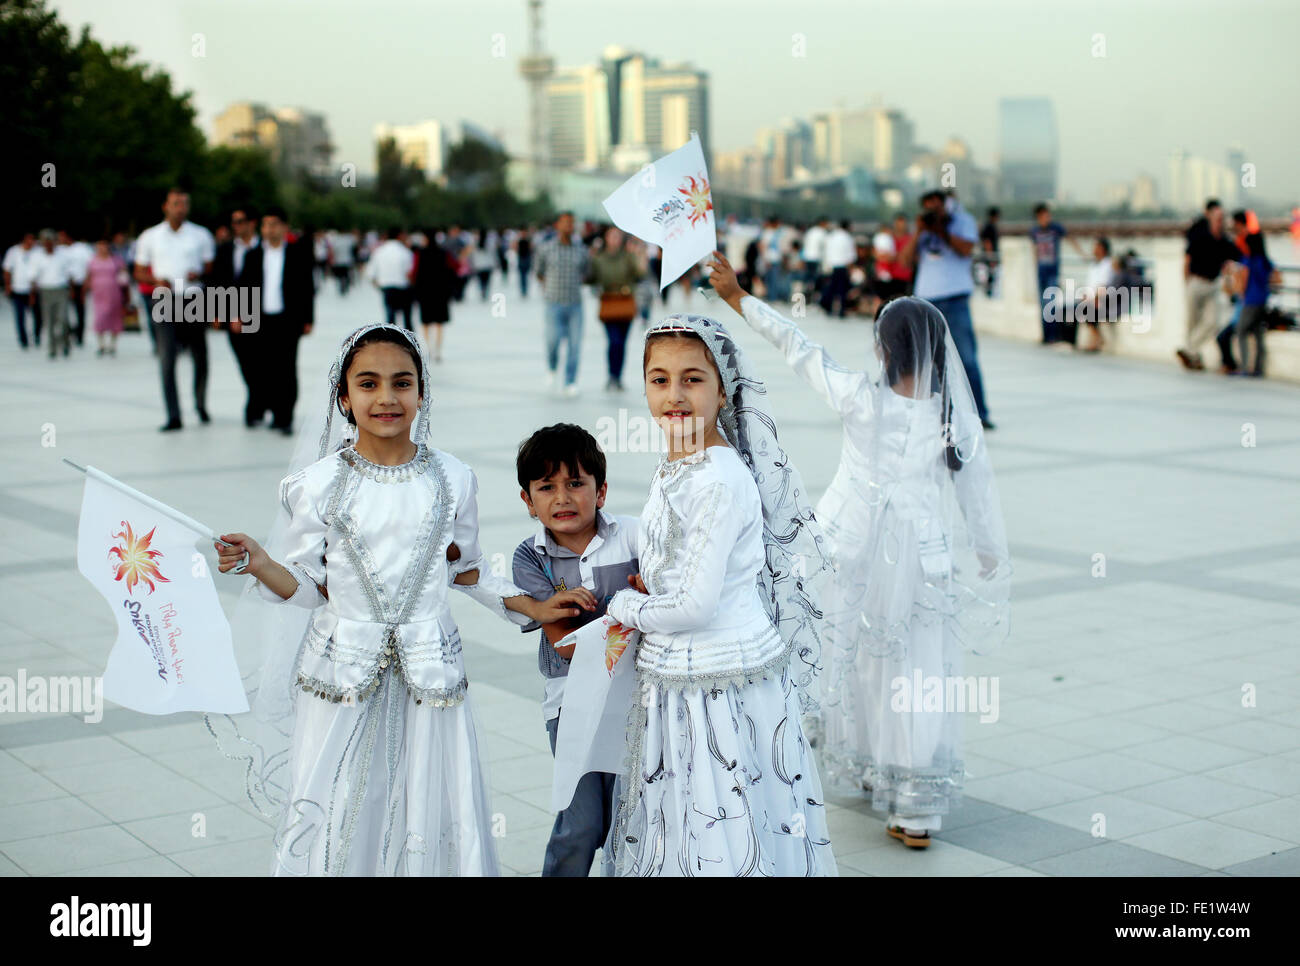 Children in traditional dress on the waterfront city of Baku, Azerbaijan - Stock Image